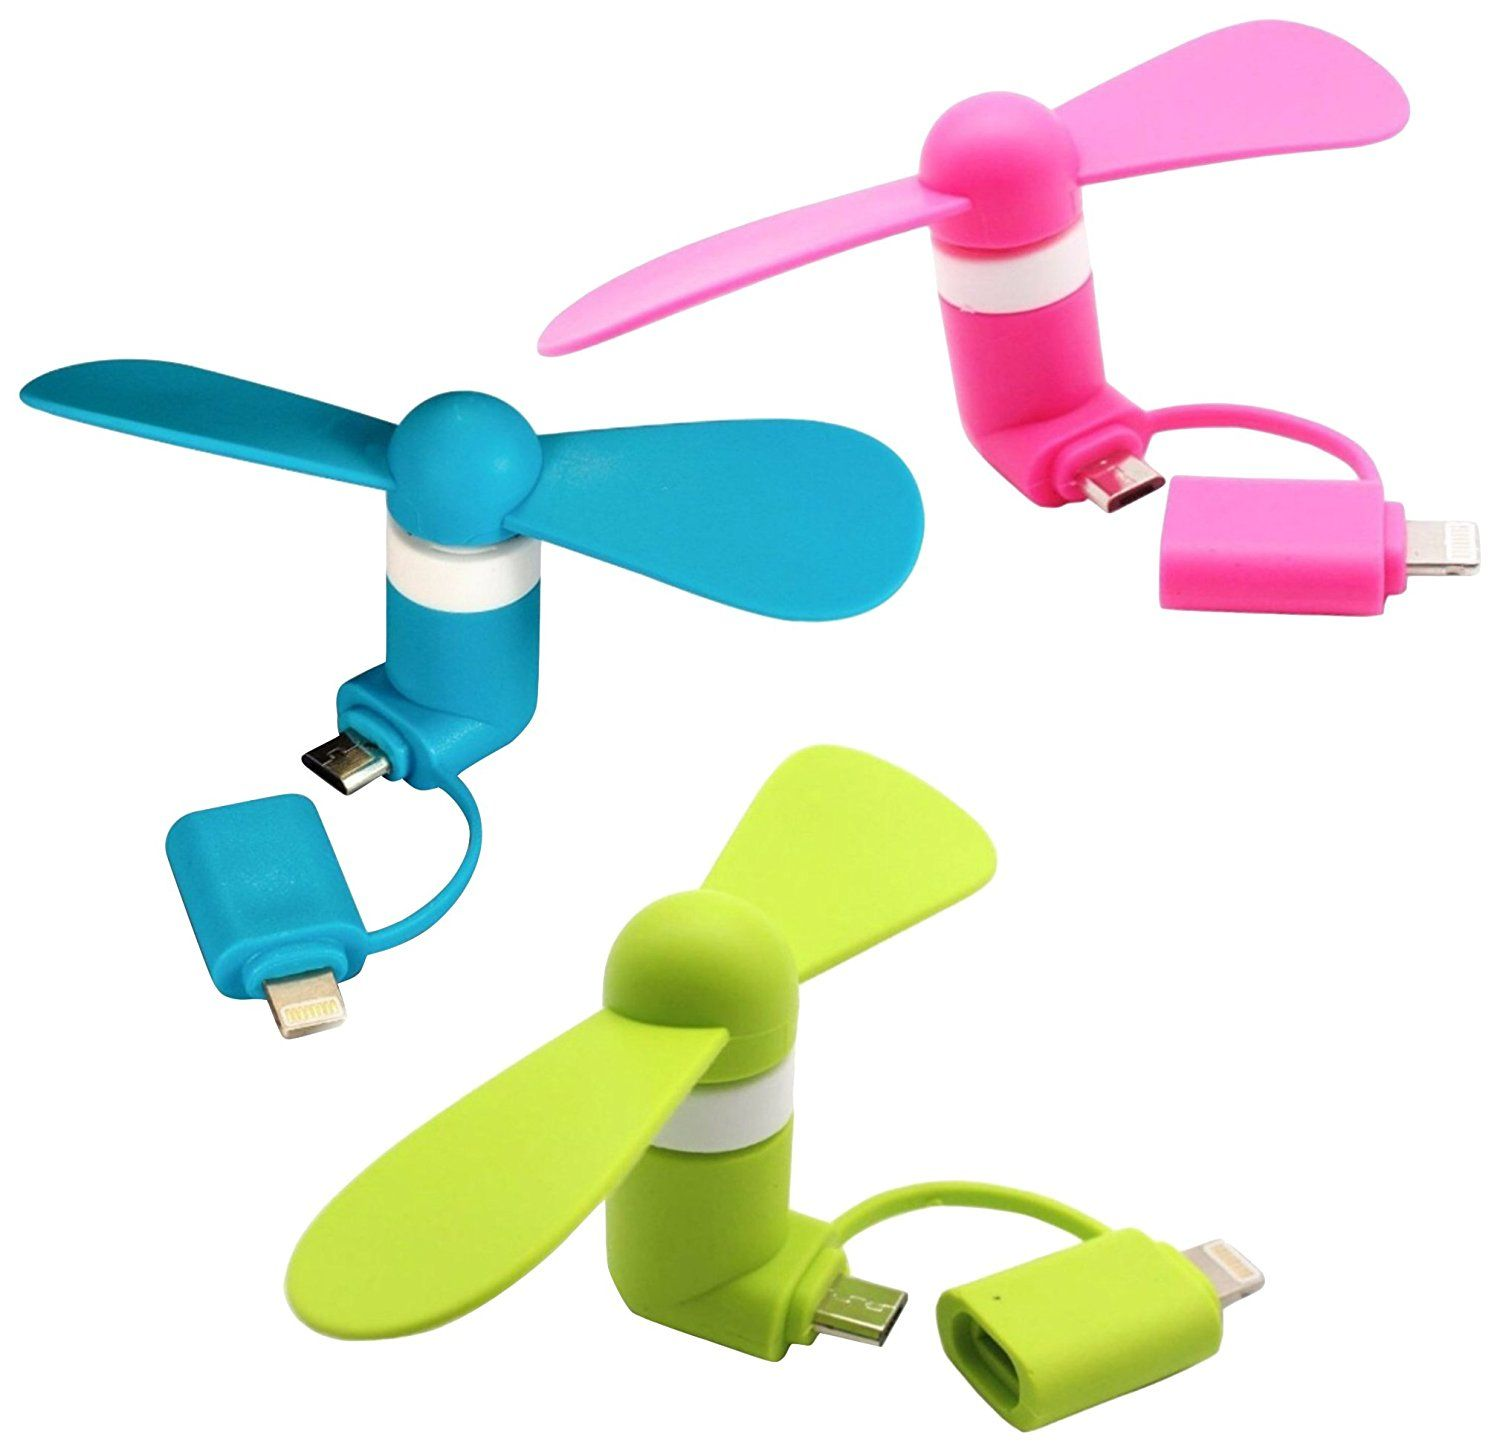 P46 Digital Mini Fan 2-in-1 Mini for iPhoneiPad and Android